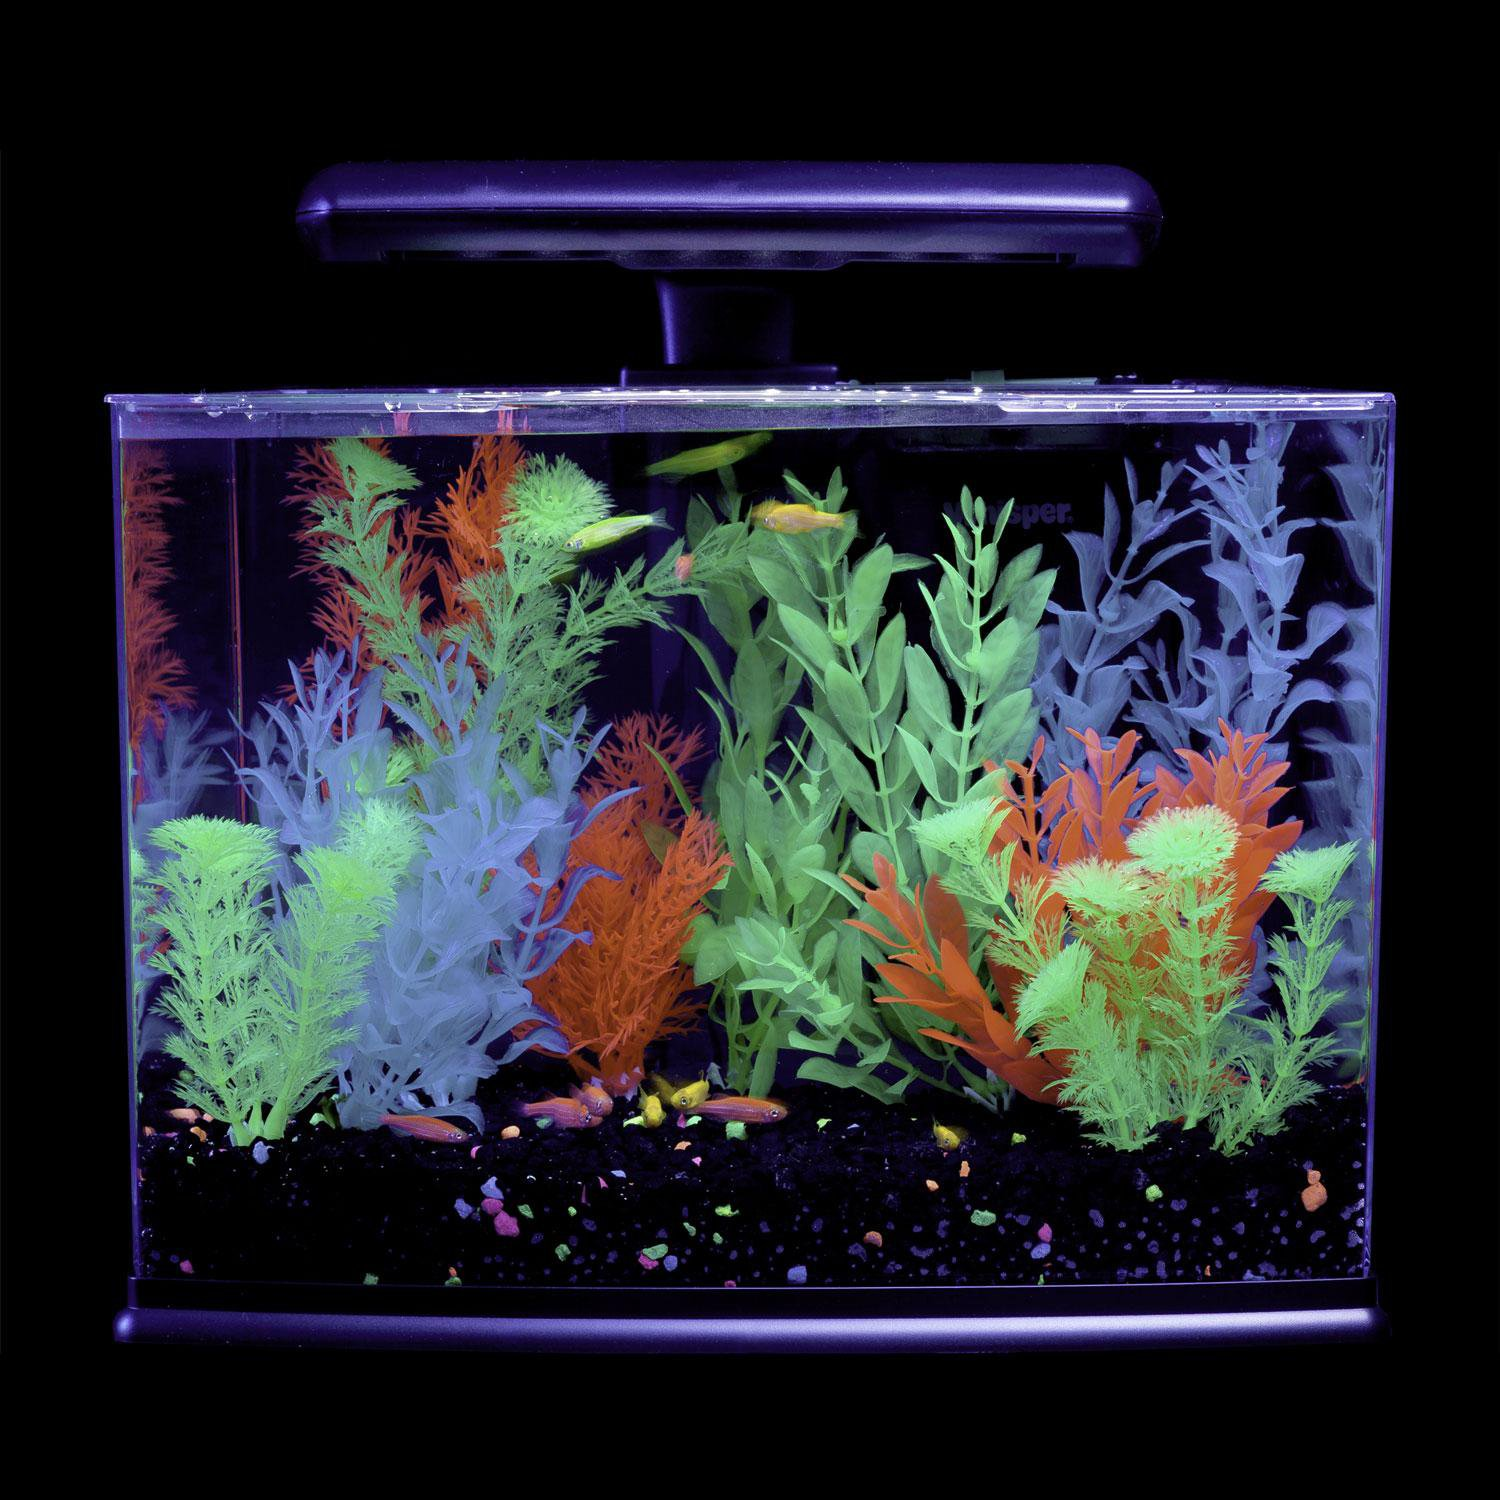 Glofish 3 gallon aquarium kit petco store for Betta fish tanks petco